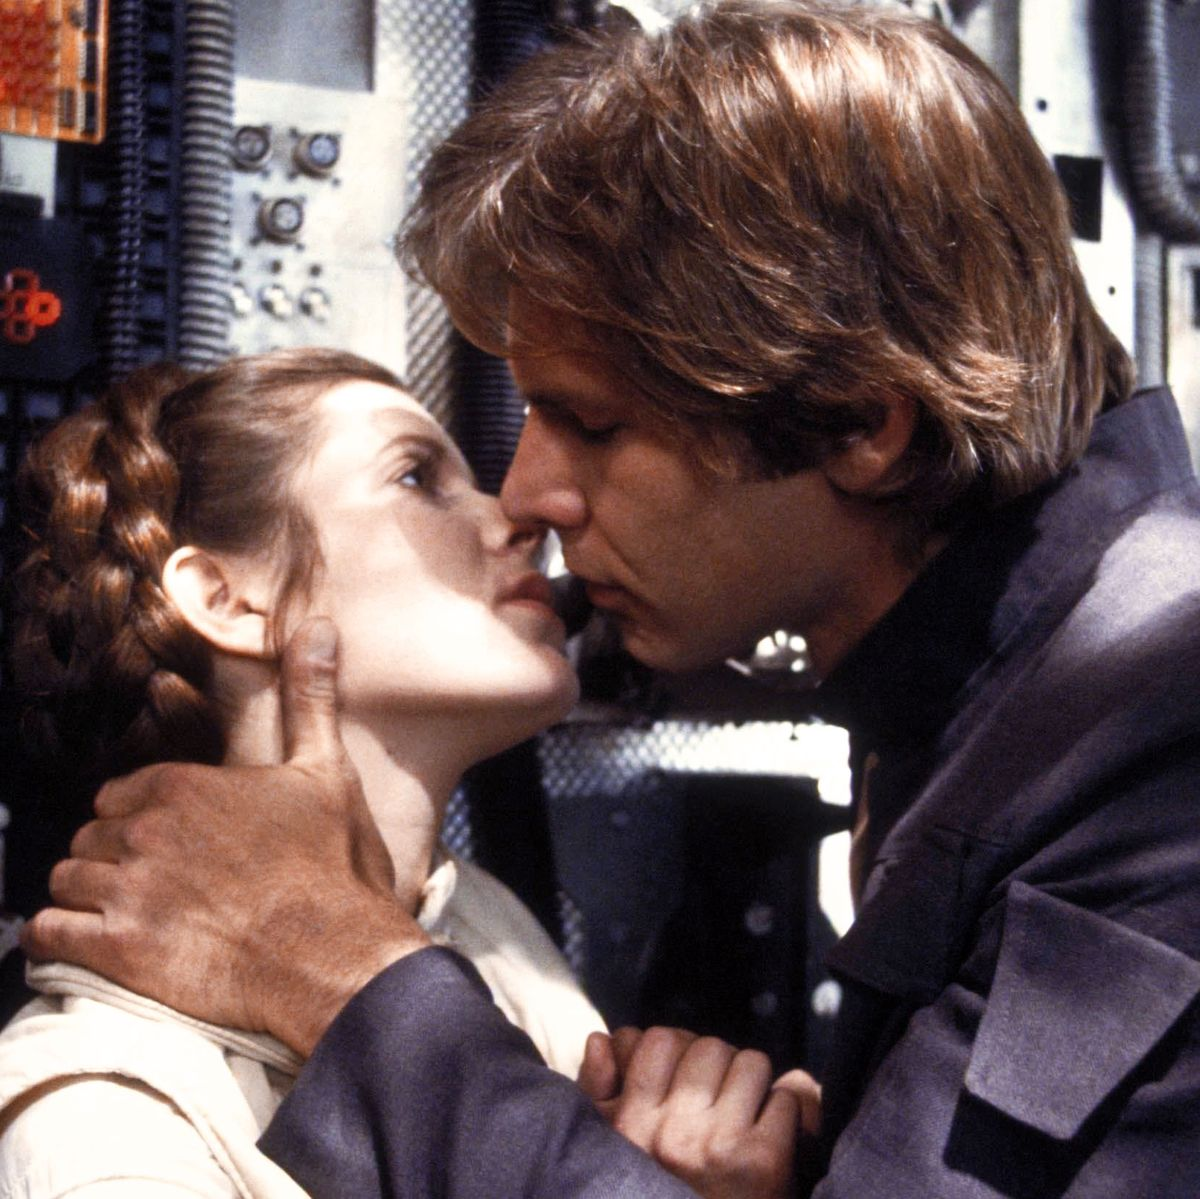 Every Kiss In The Star Wars Cinematic Universe Ranked